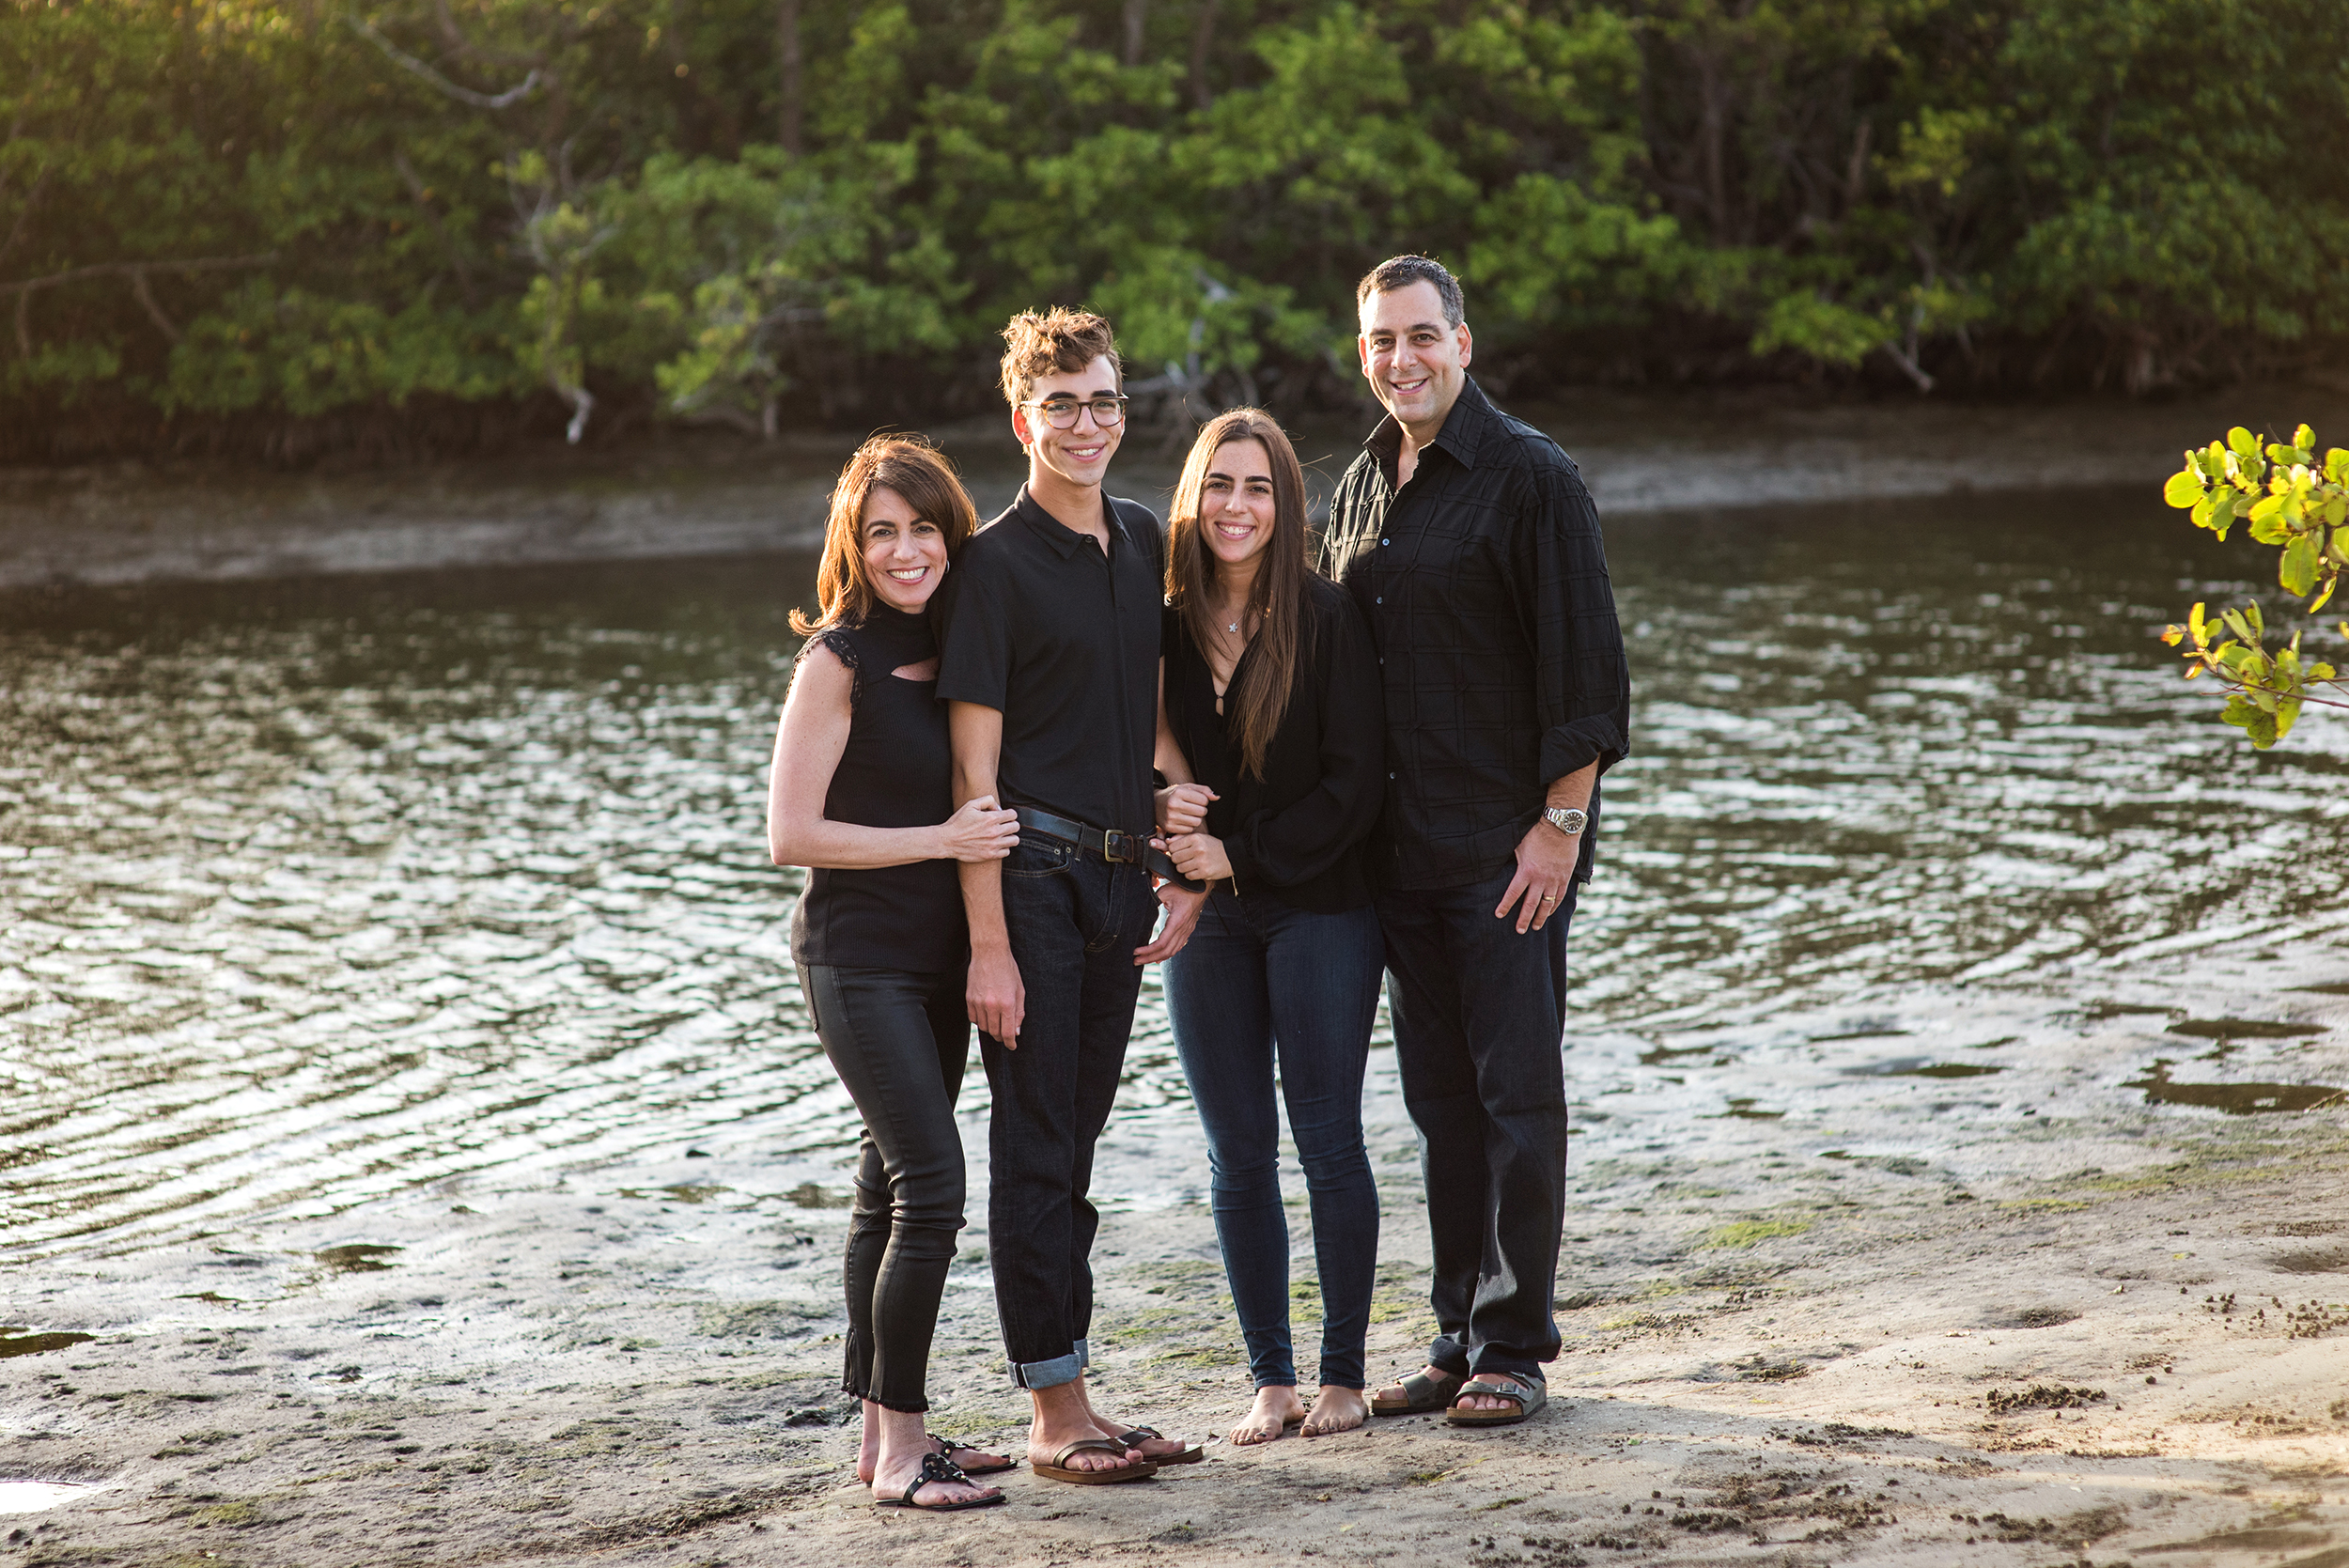 family-photography-south-florida-alison-frank-photography_33.jpg